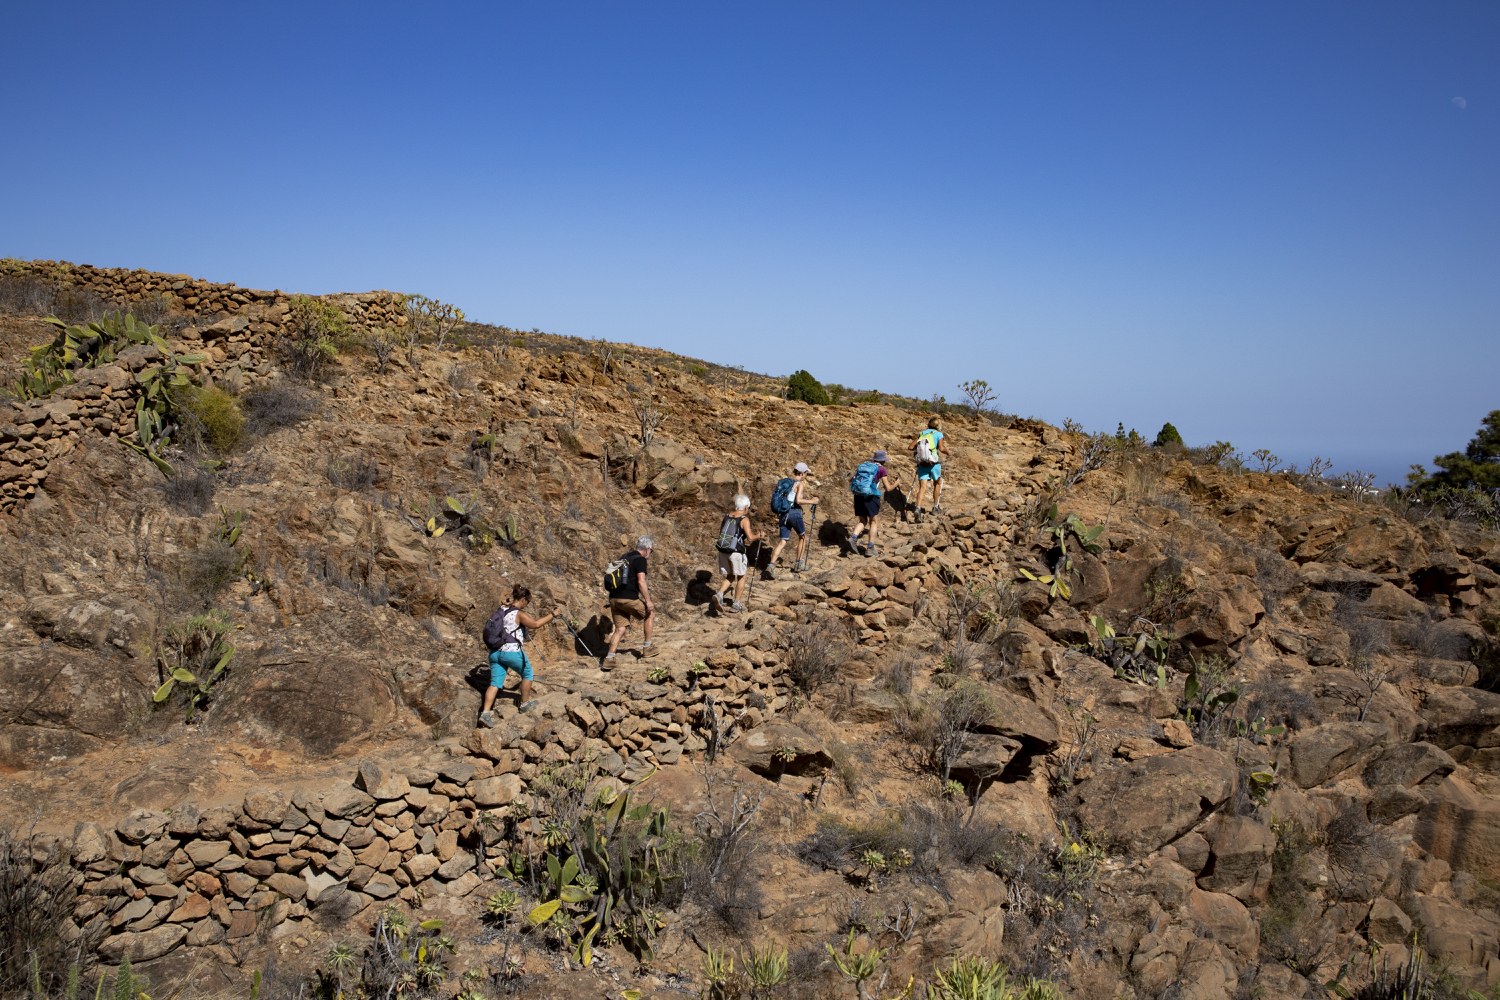 Ascent in the Barranco